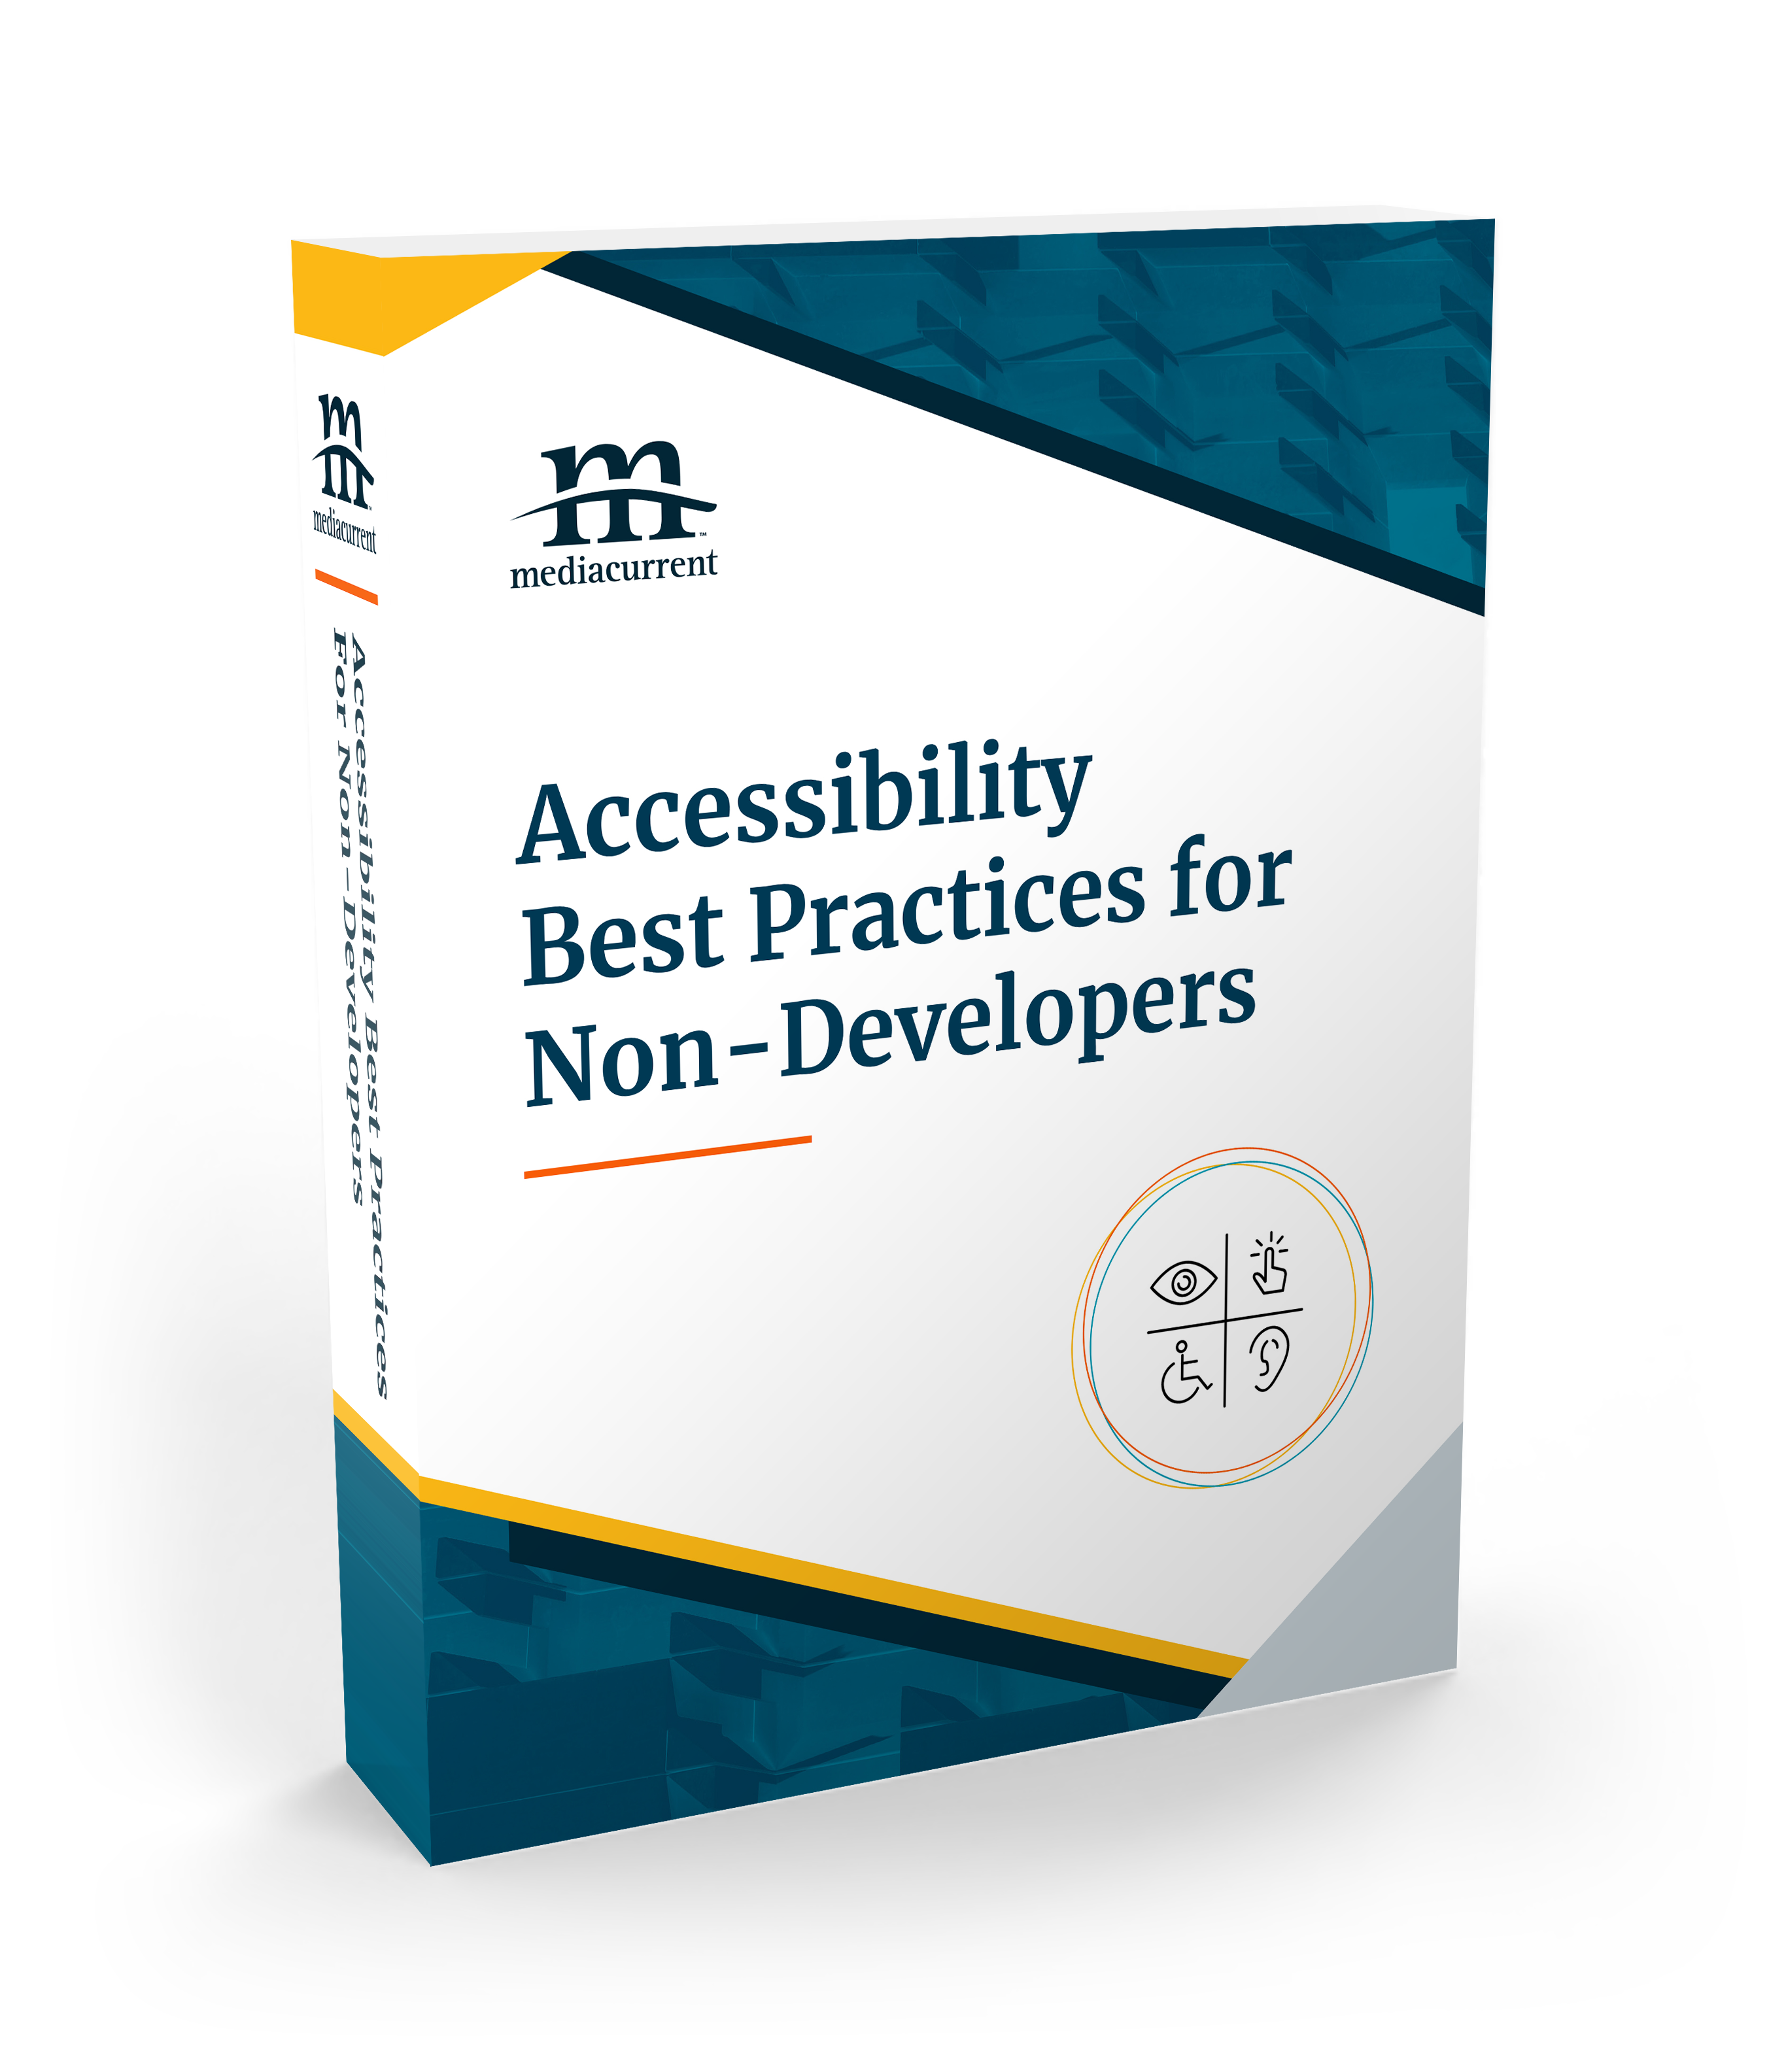 accessibility best practices for non-developers ebook cover